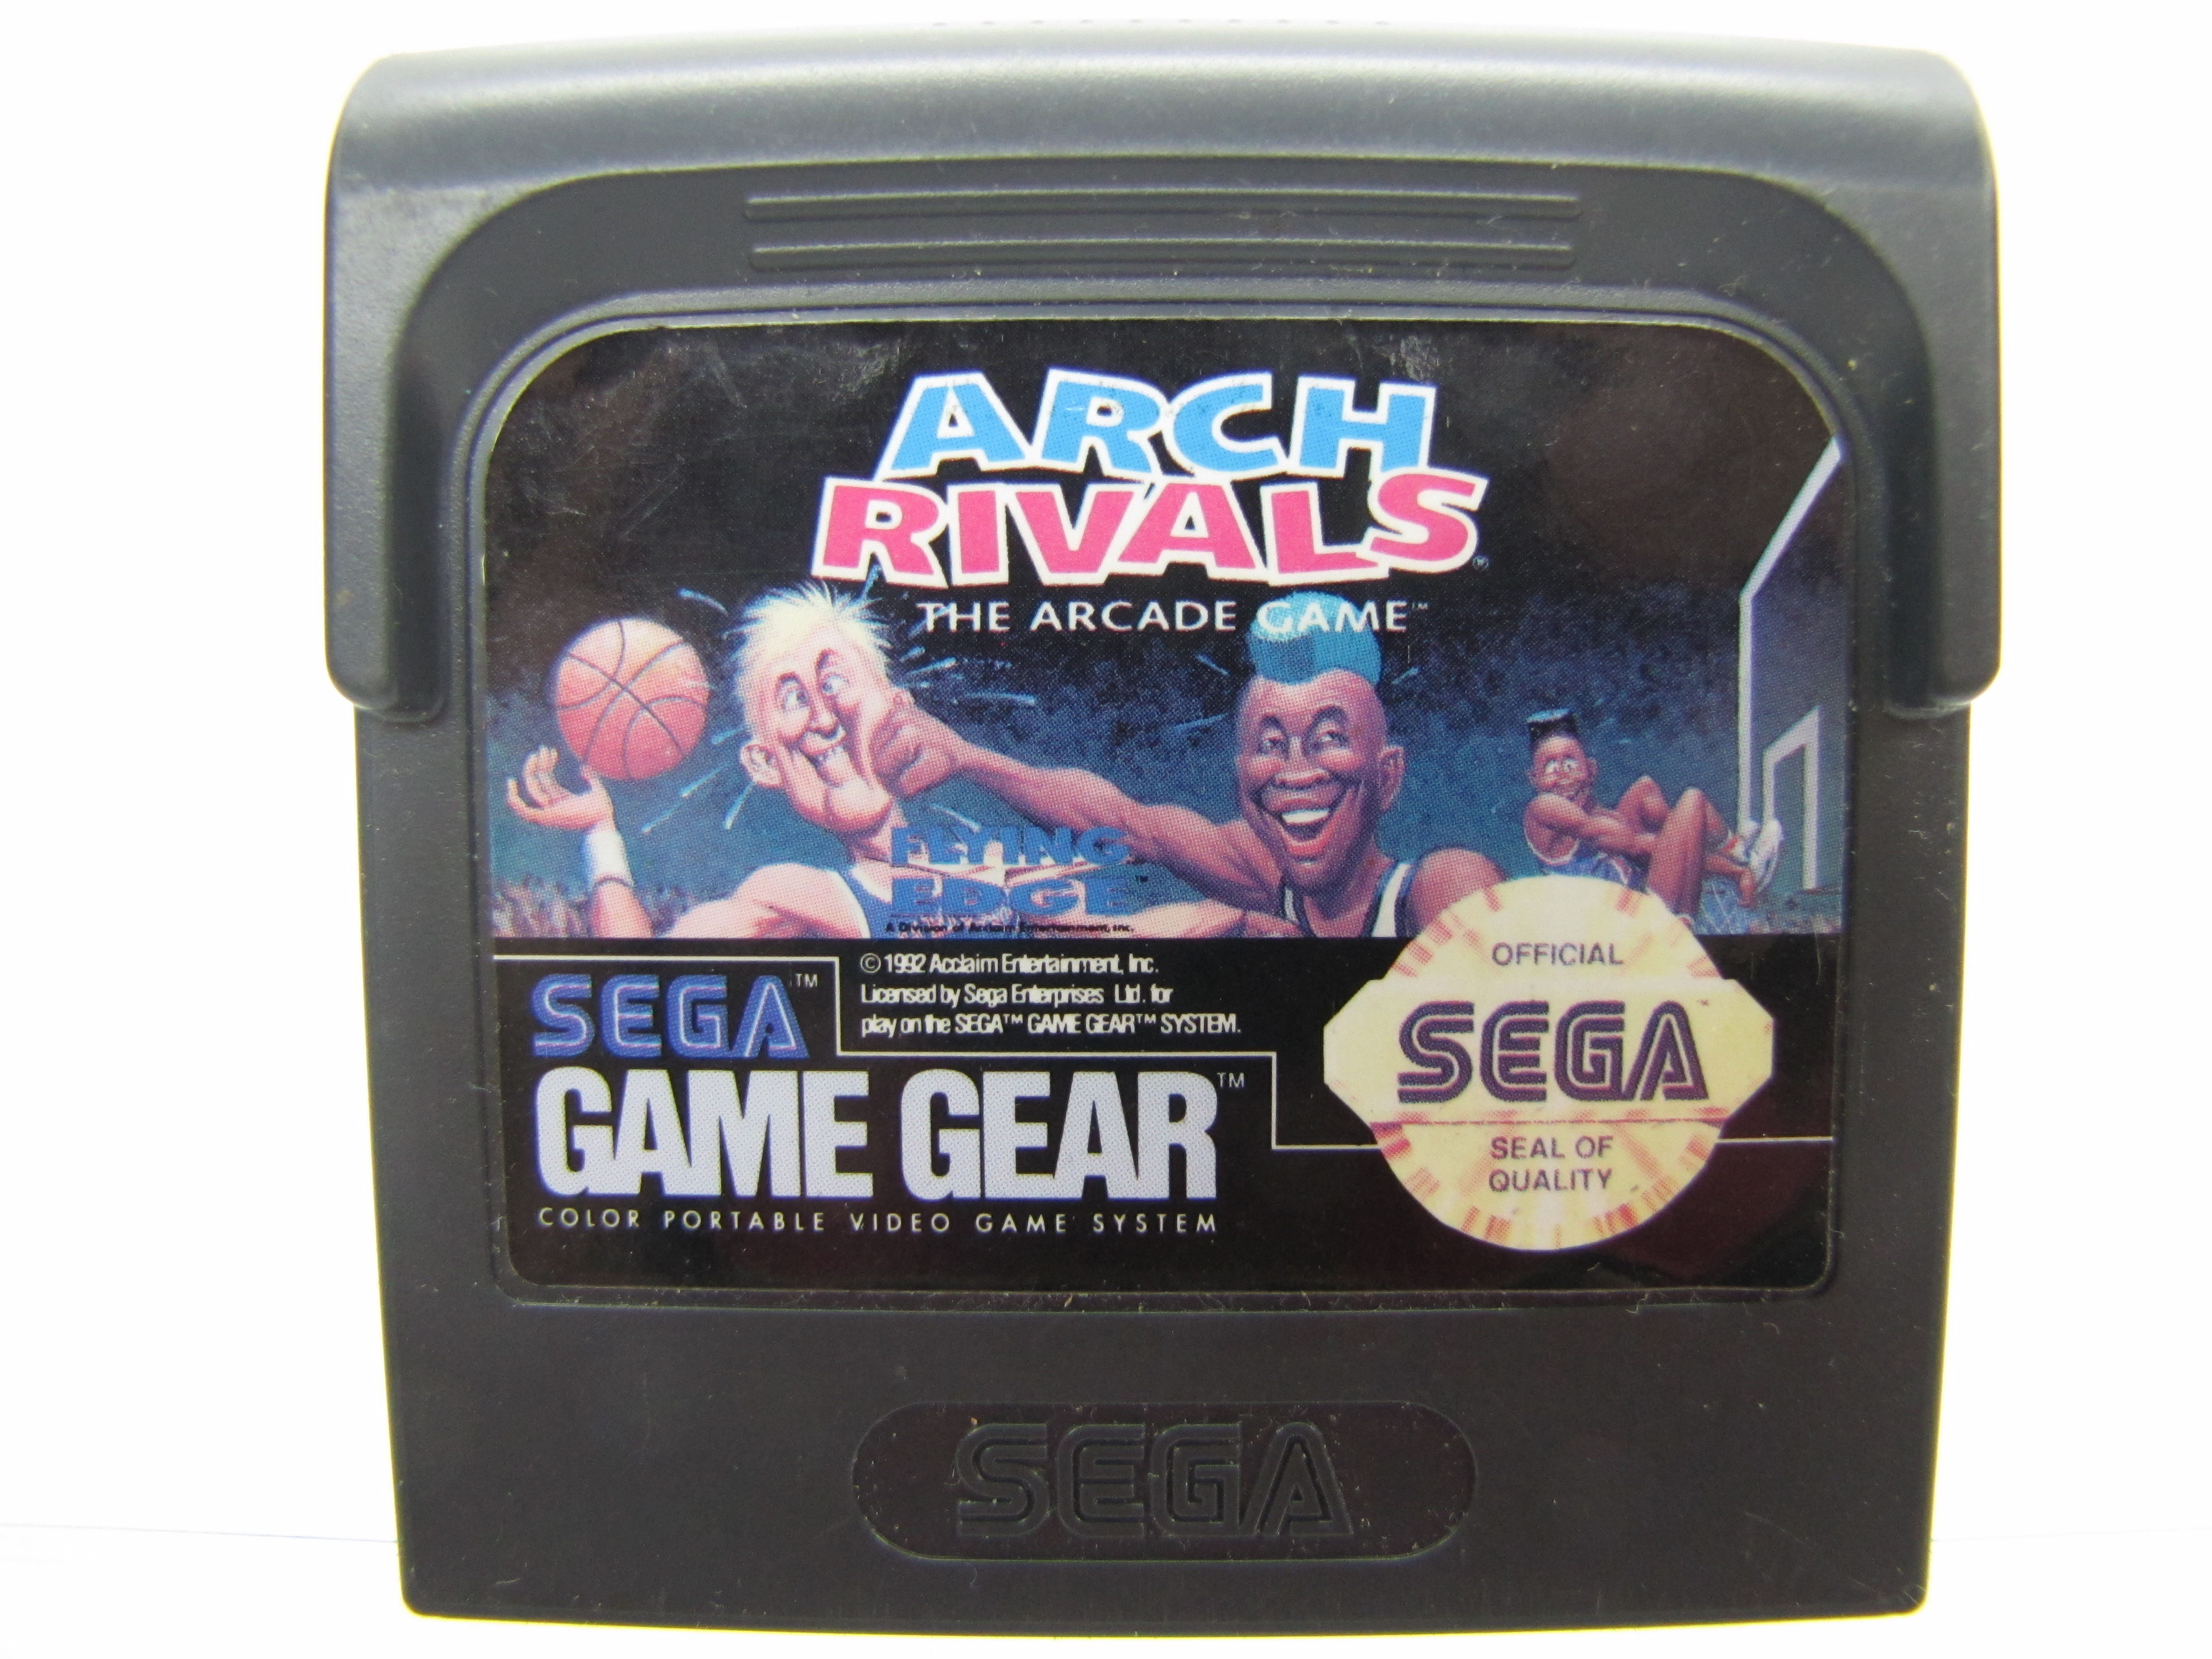 Sega Game Gear Arch Rivals: The Arcade Game - 1992